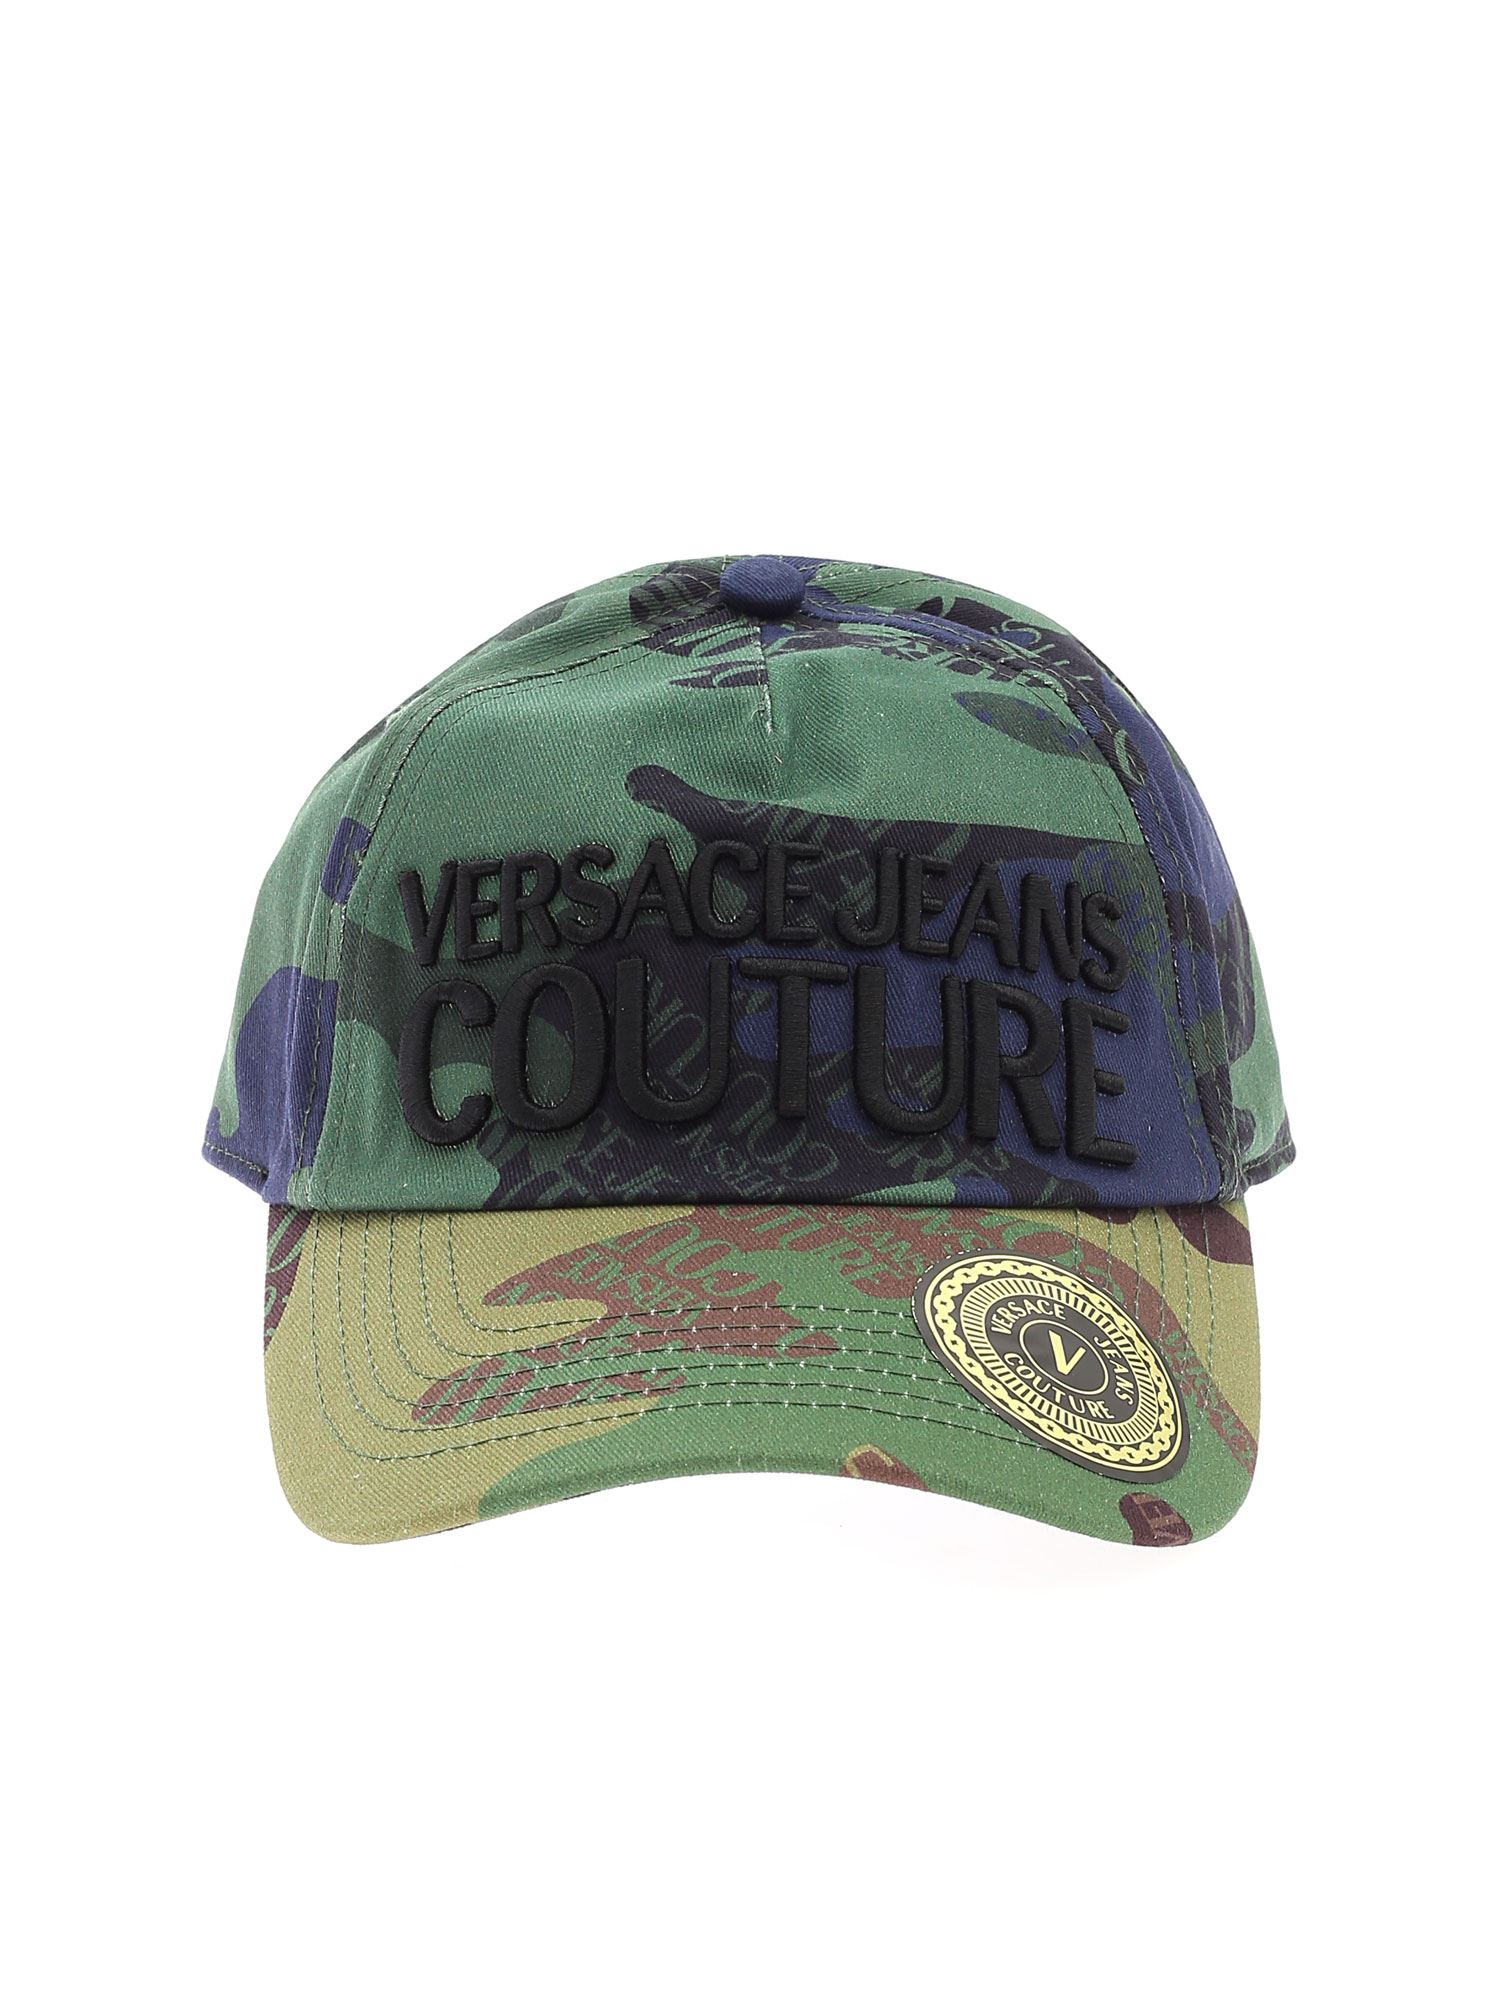 Versace Jeans Couture LOGO CAP IN SHADES OF GREEN